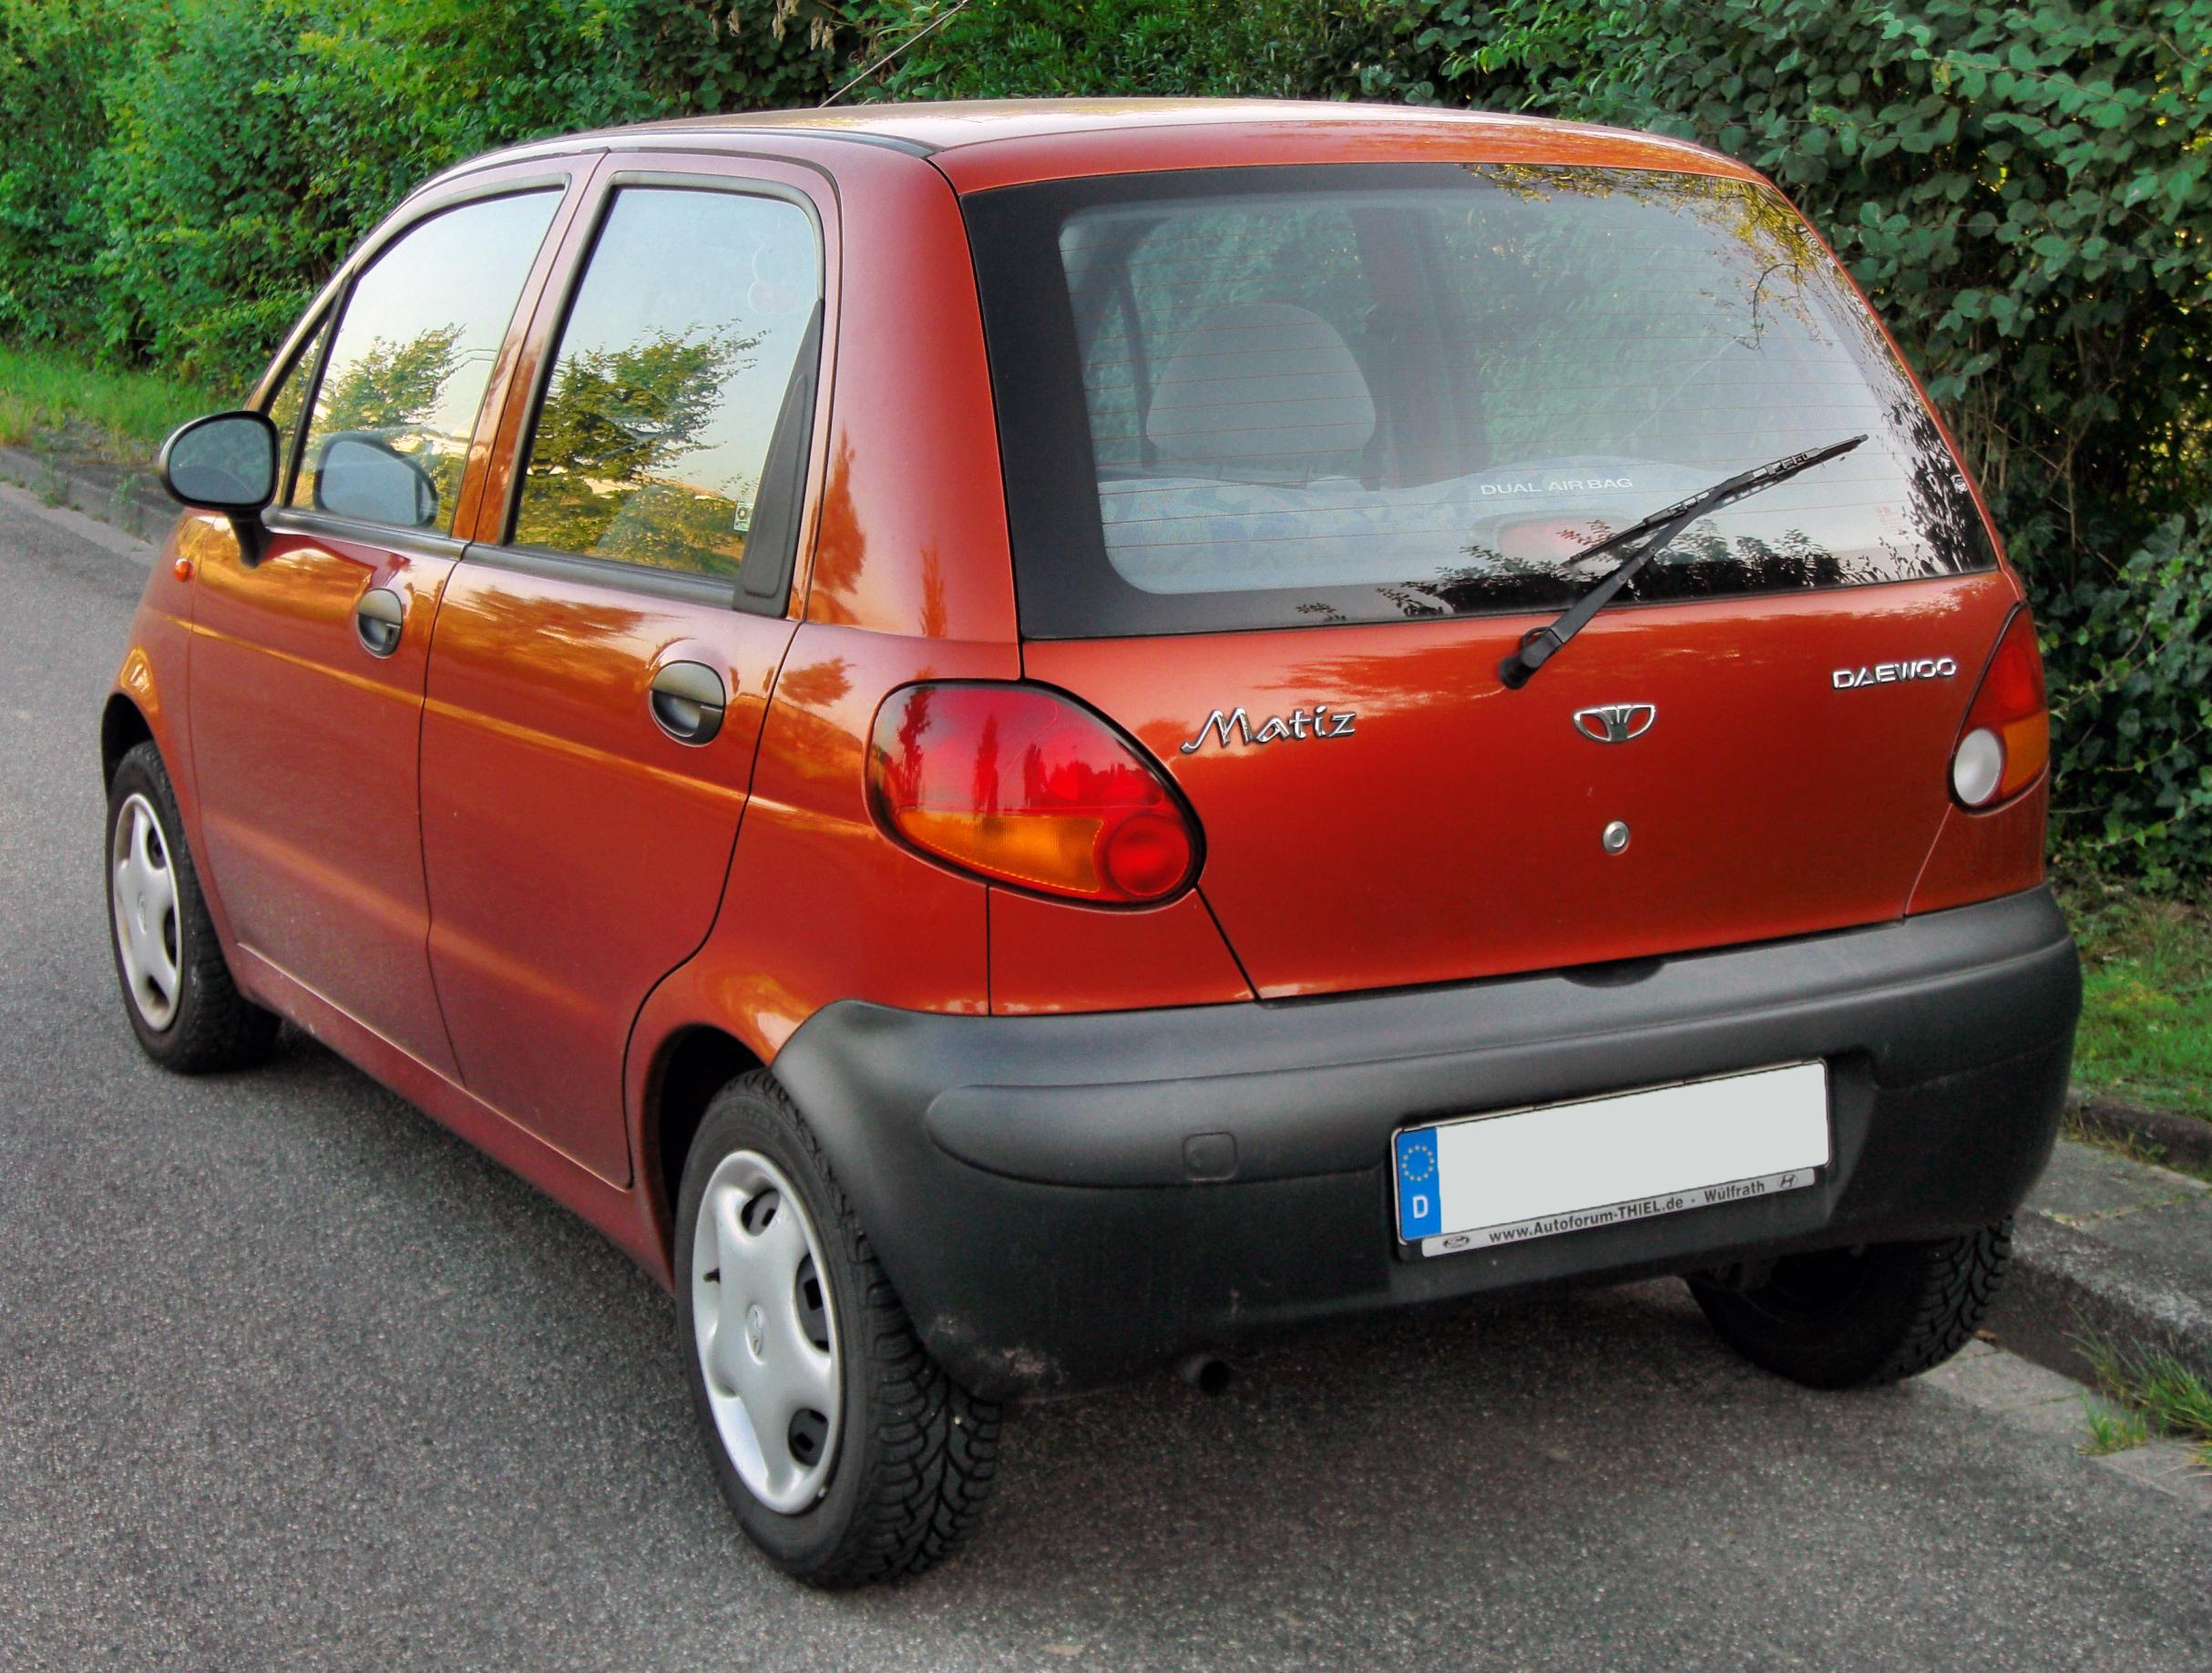 File:Daewoo Matiz 20090815 rear.JPG - Wikipedia